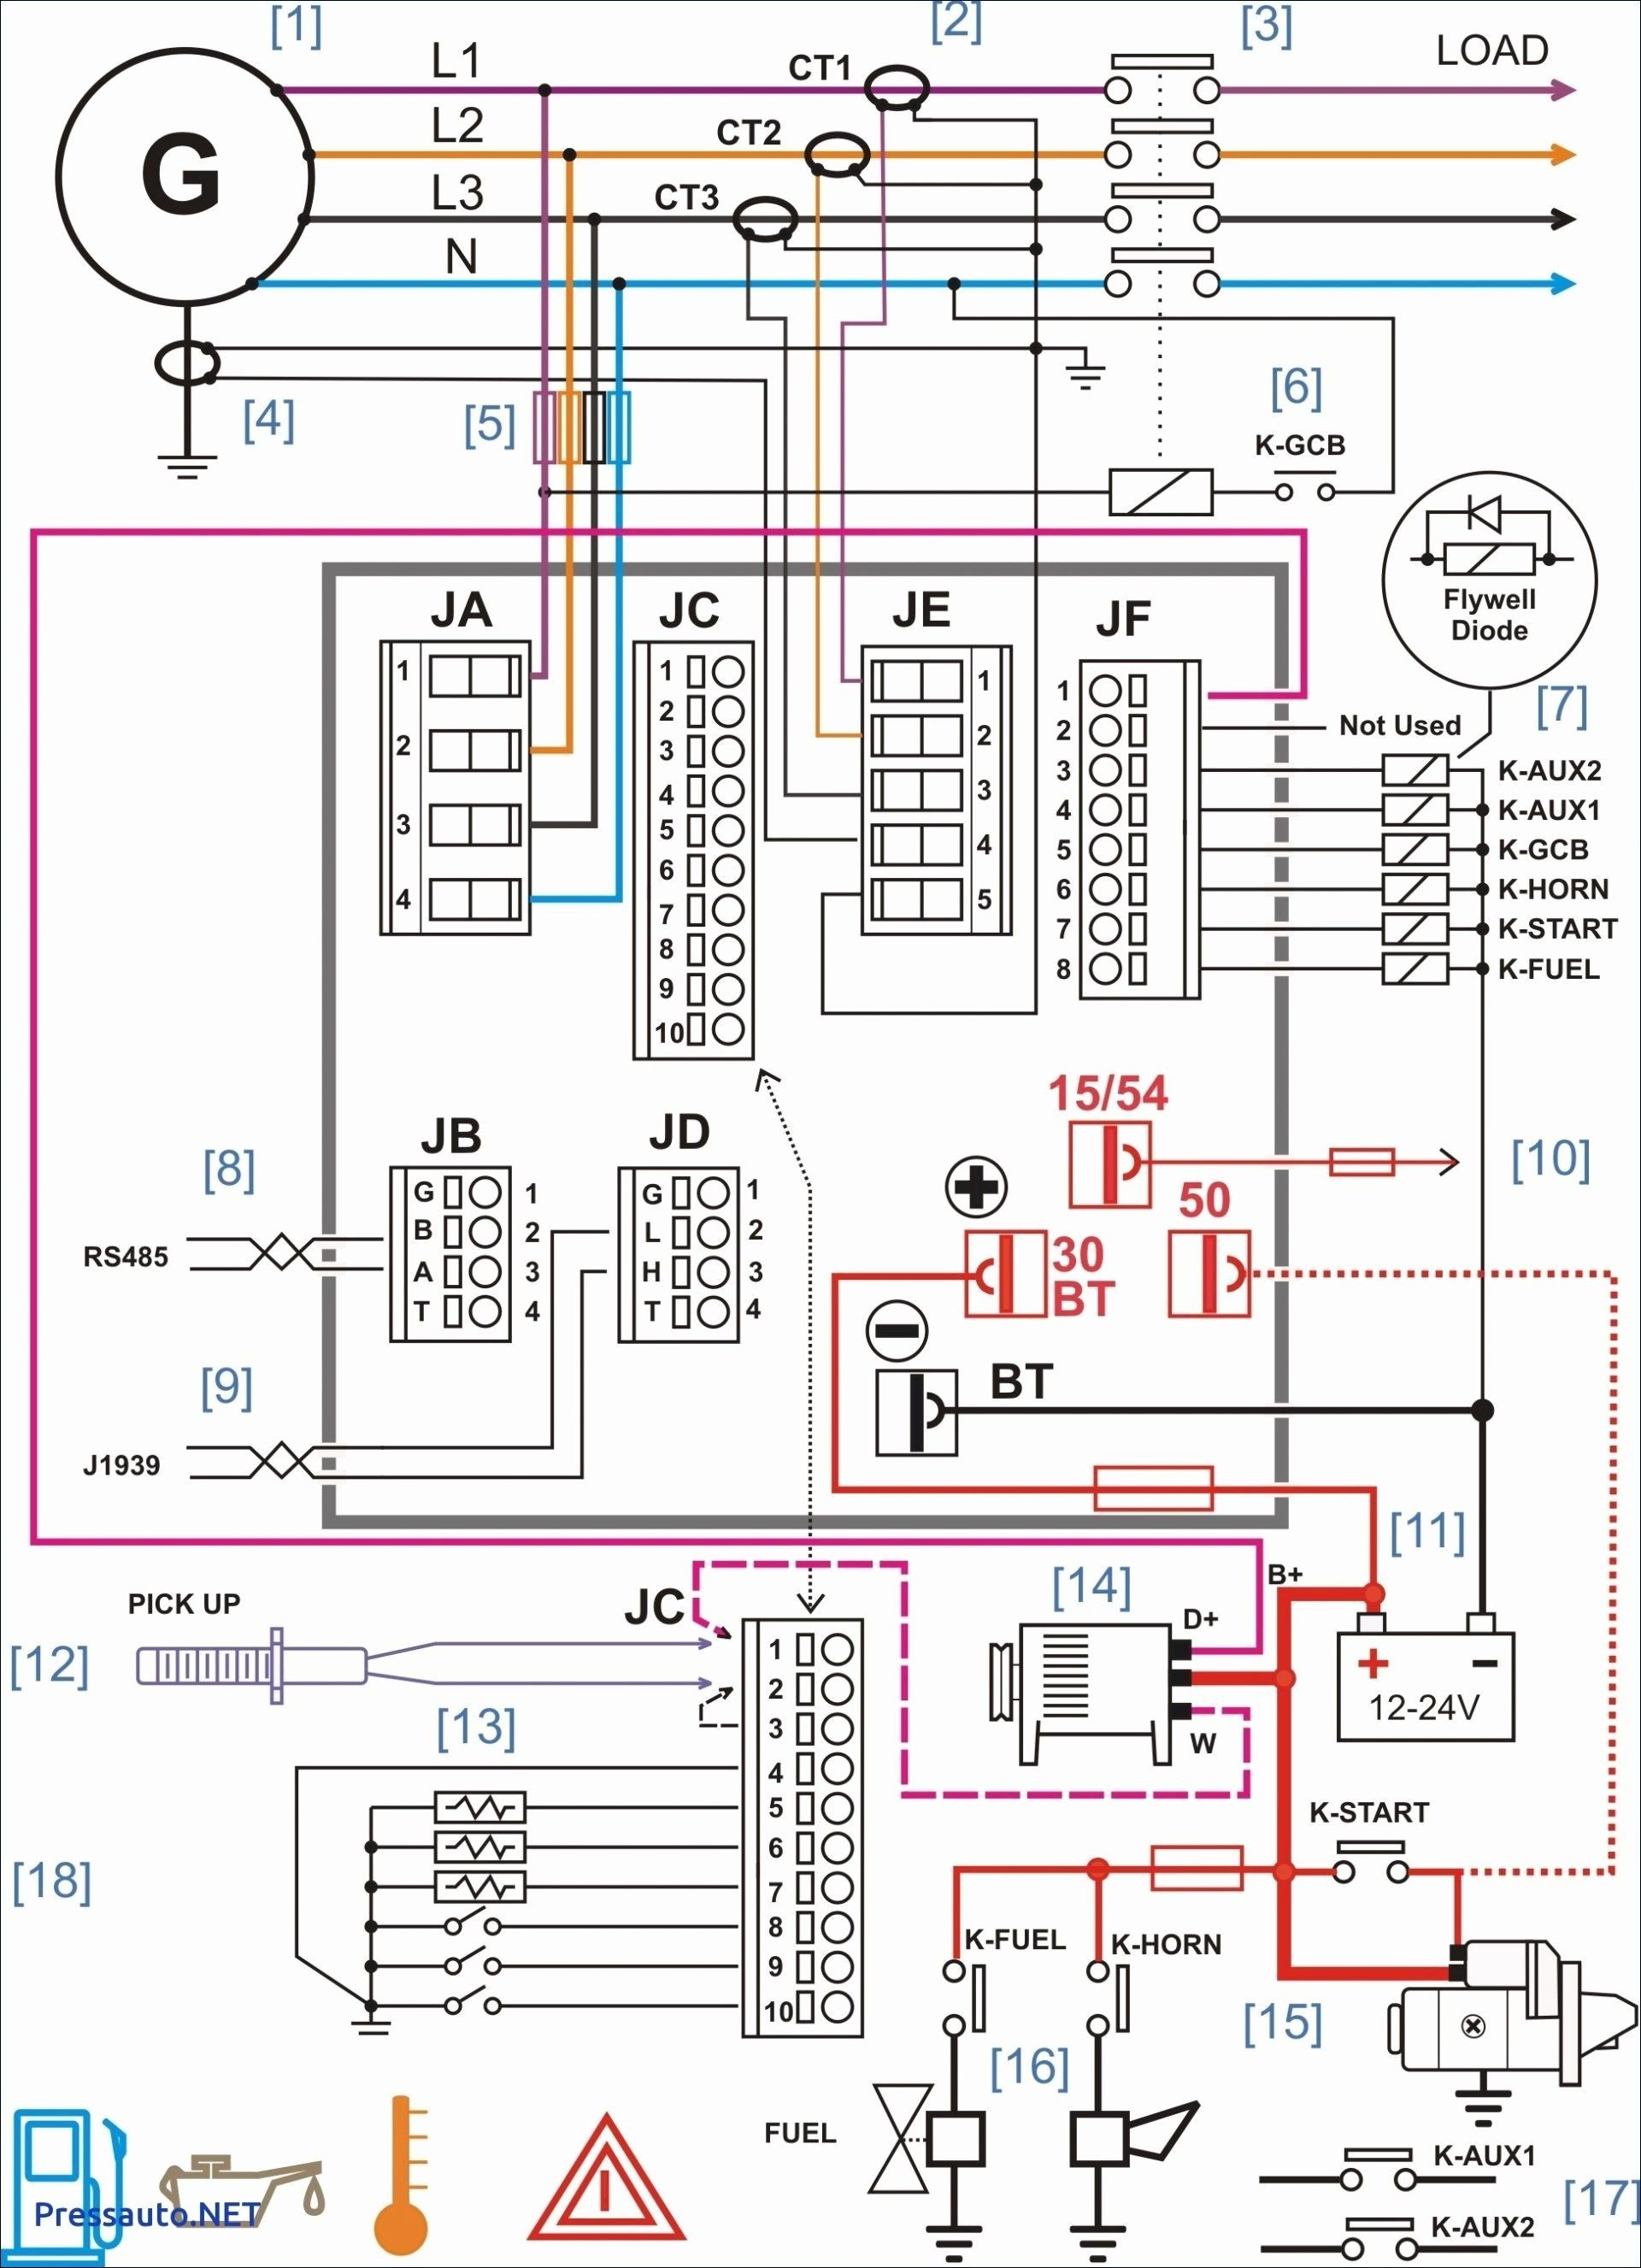 mazak electrical diagrams pdf wiring diagram nameelectrical diagrams pdf wiring diagram mega house wiring diagrams pdf [ 1920 x 2653 Pixel ]